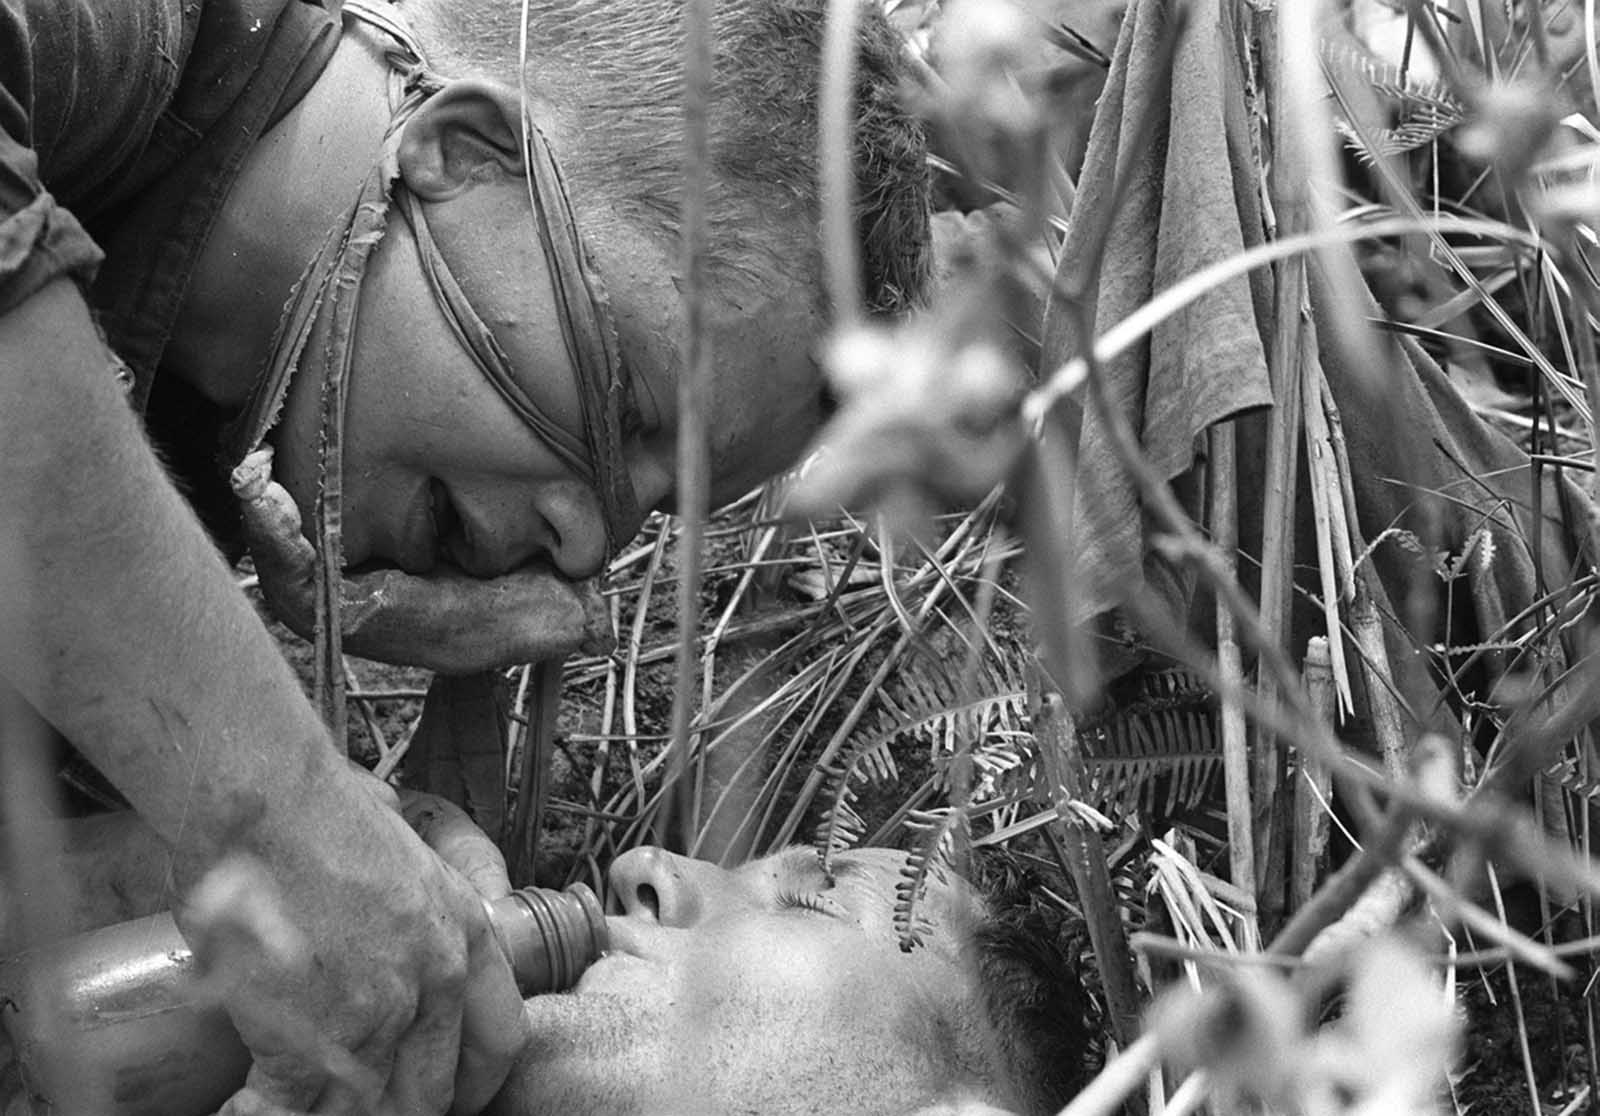 A Marine, top, wounded slightly when his face was creased by an enemy bullet, pours water into the mouth of a fellow Marine suffering from heat during Operation Hastings along the demilitarized zone between North and South Vietnam on July 21, 1966.